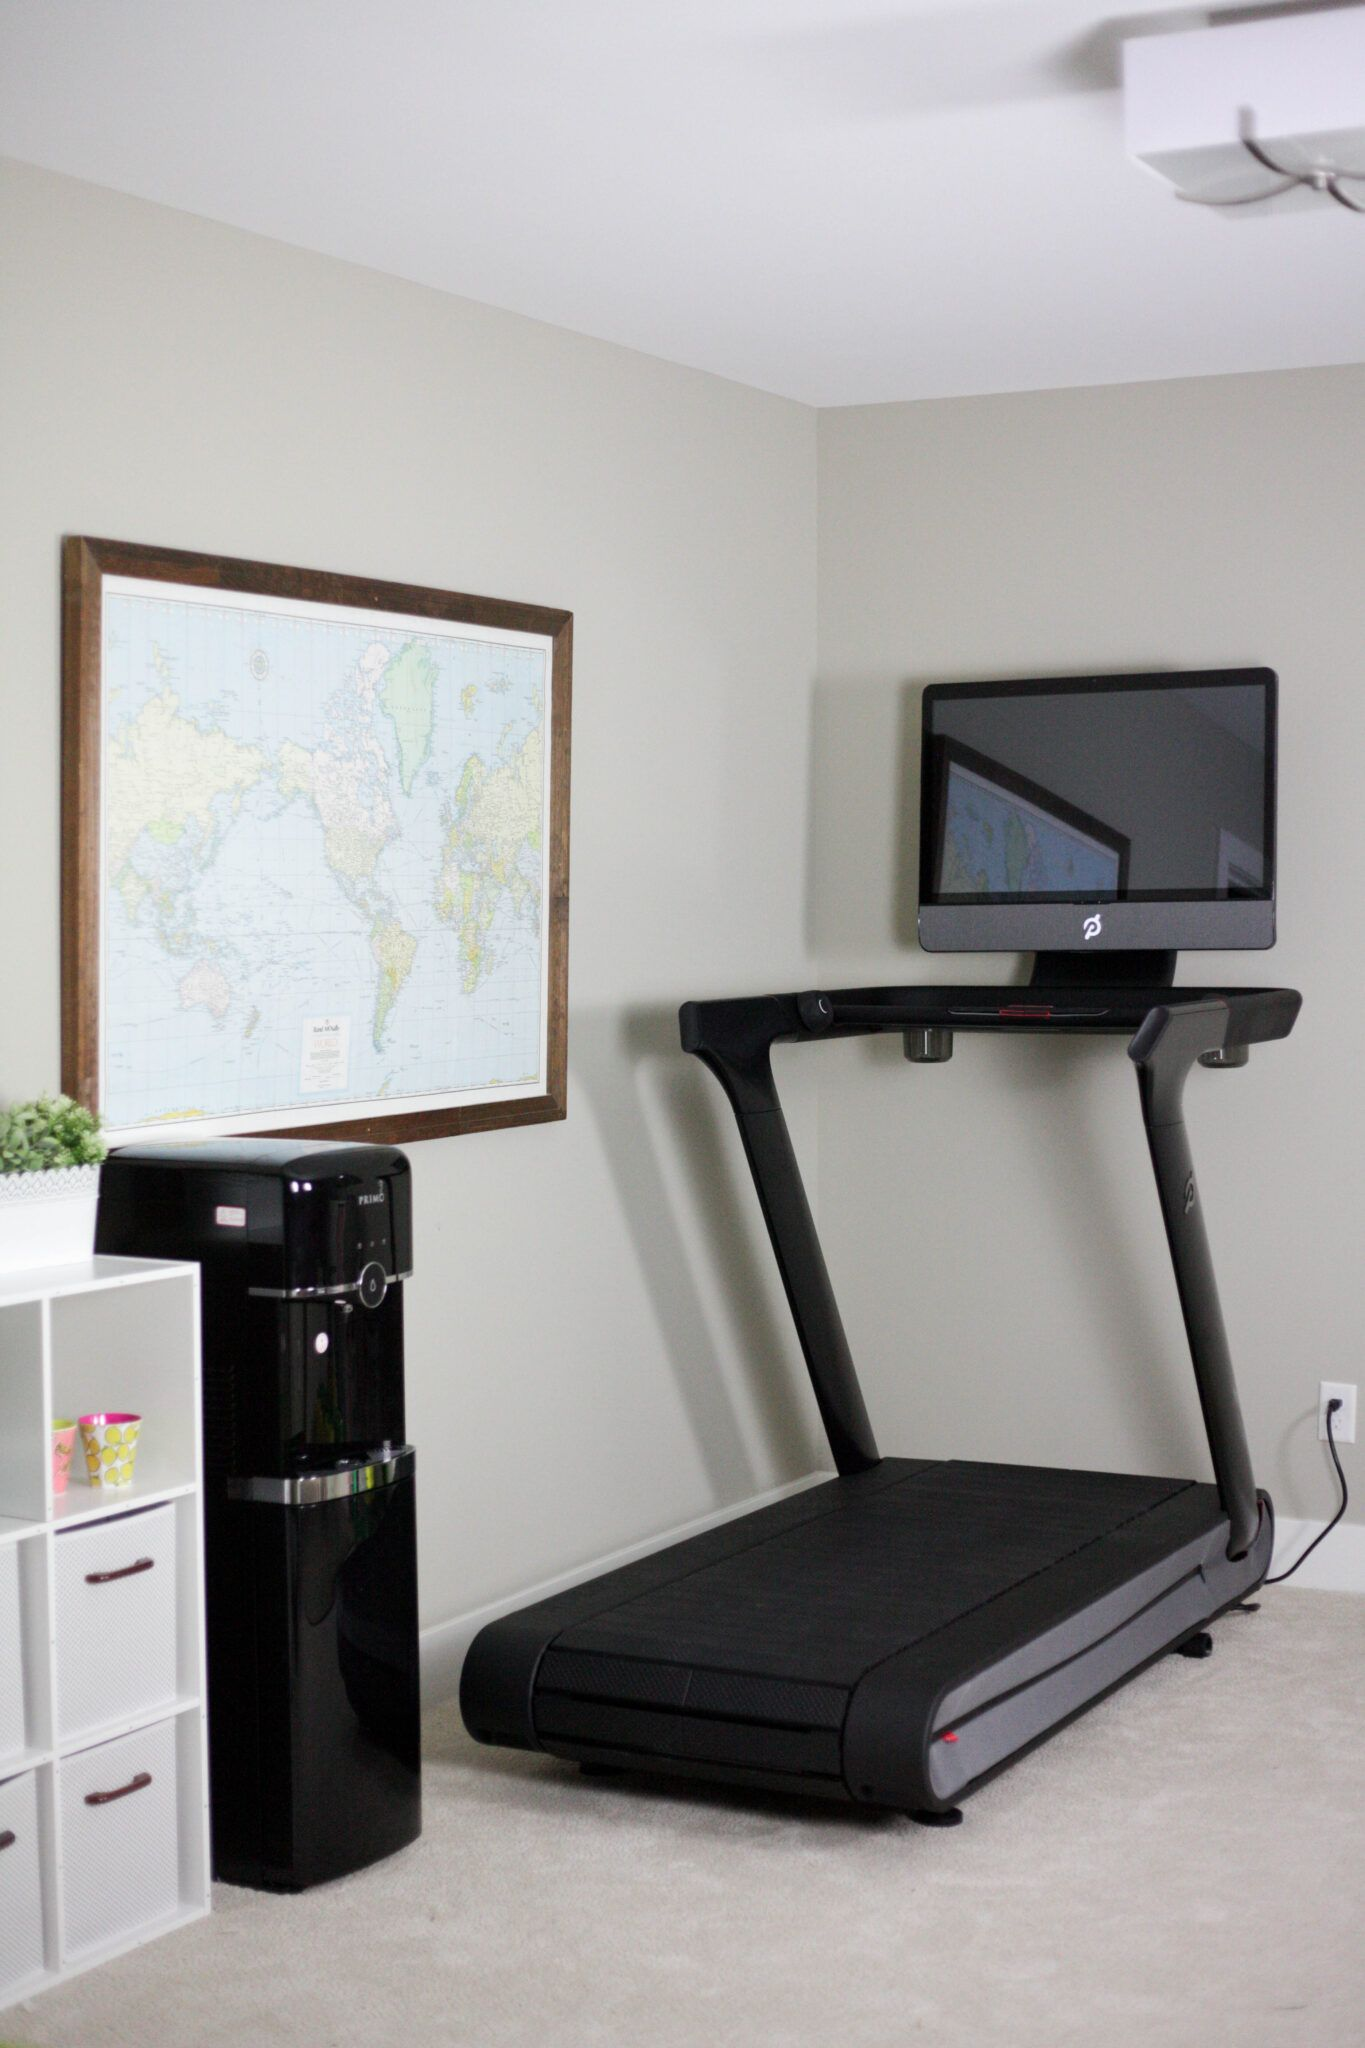 Can You Watch Tv On Peloton Is The Peloton Worth It Peloton Treadmill Review Paisley Sparrow Treadmill Reviews Treadmill Home Treadmill